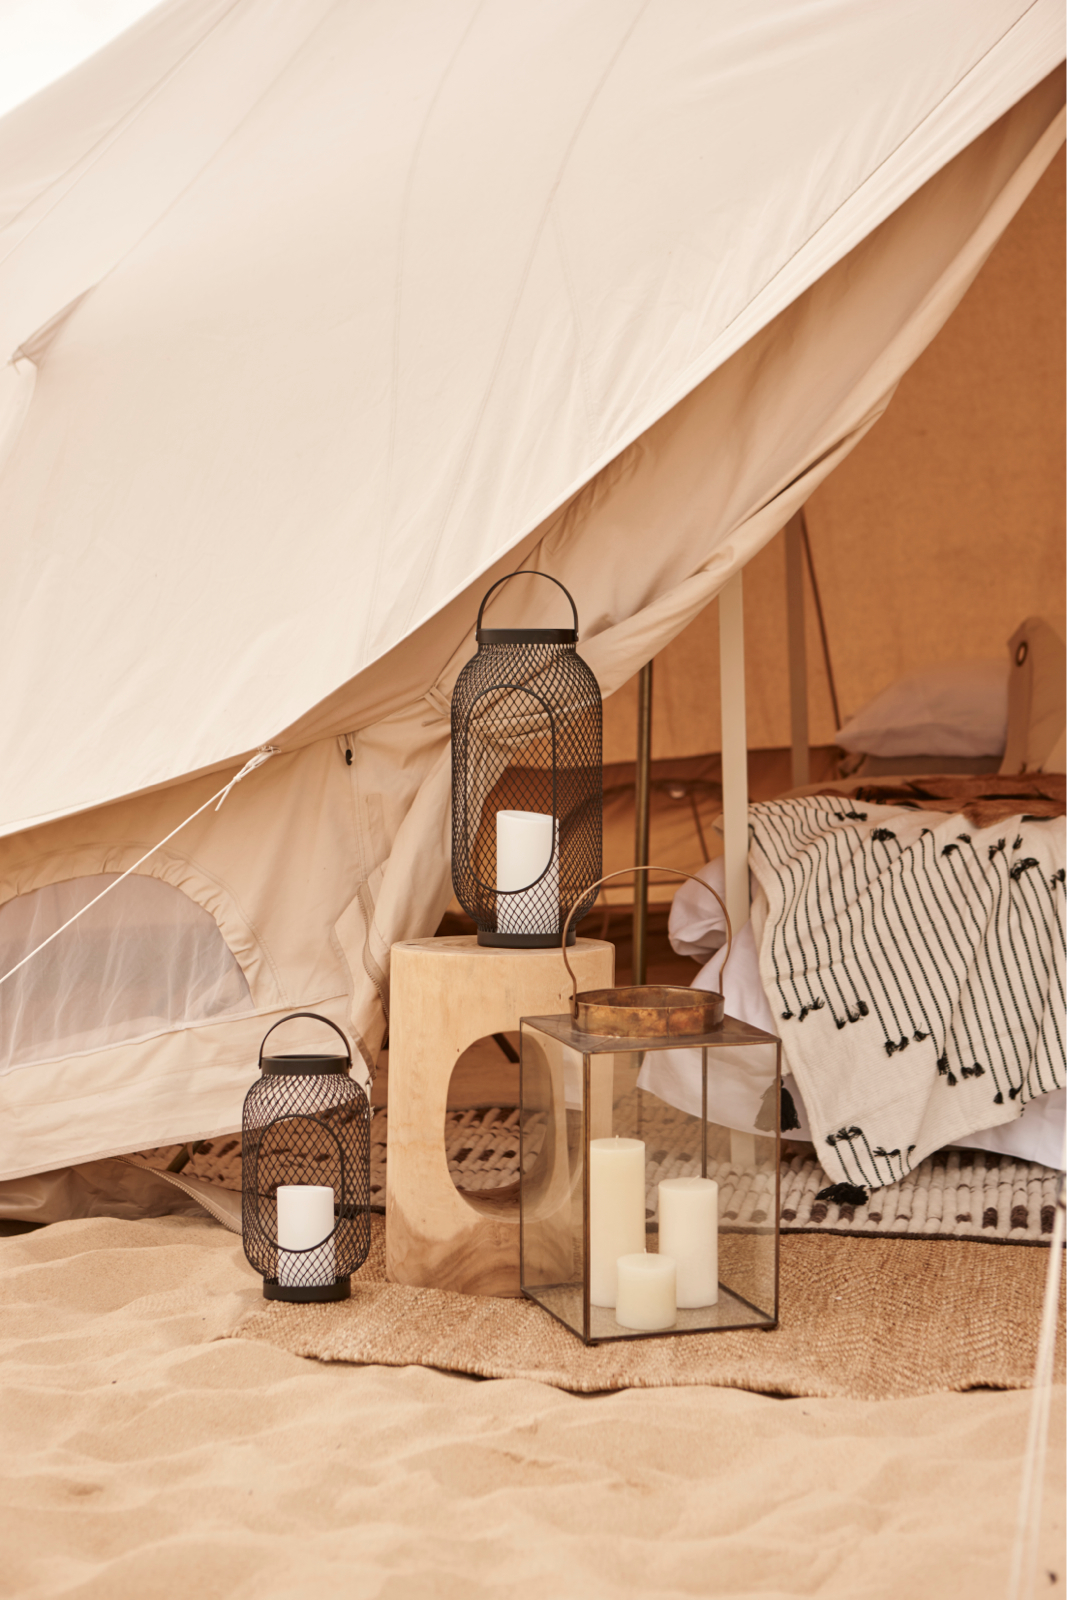 6m diameter Emperor Twin Bell Tent Glamping Tent, natural canvas, camping glamping, african safari